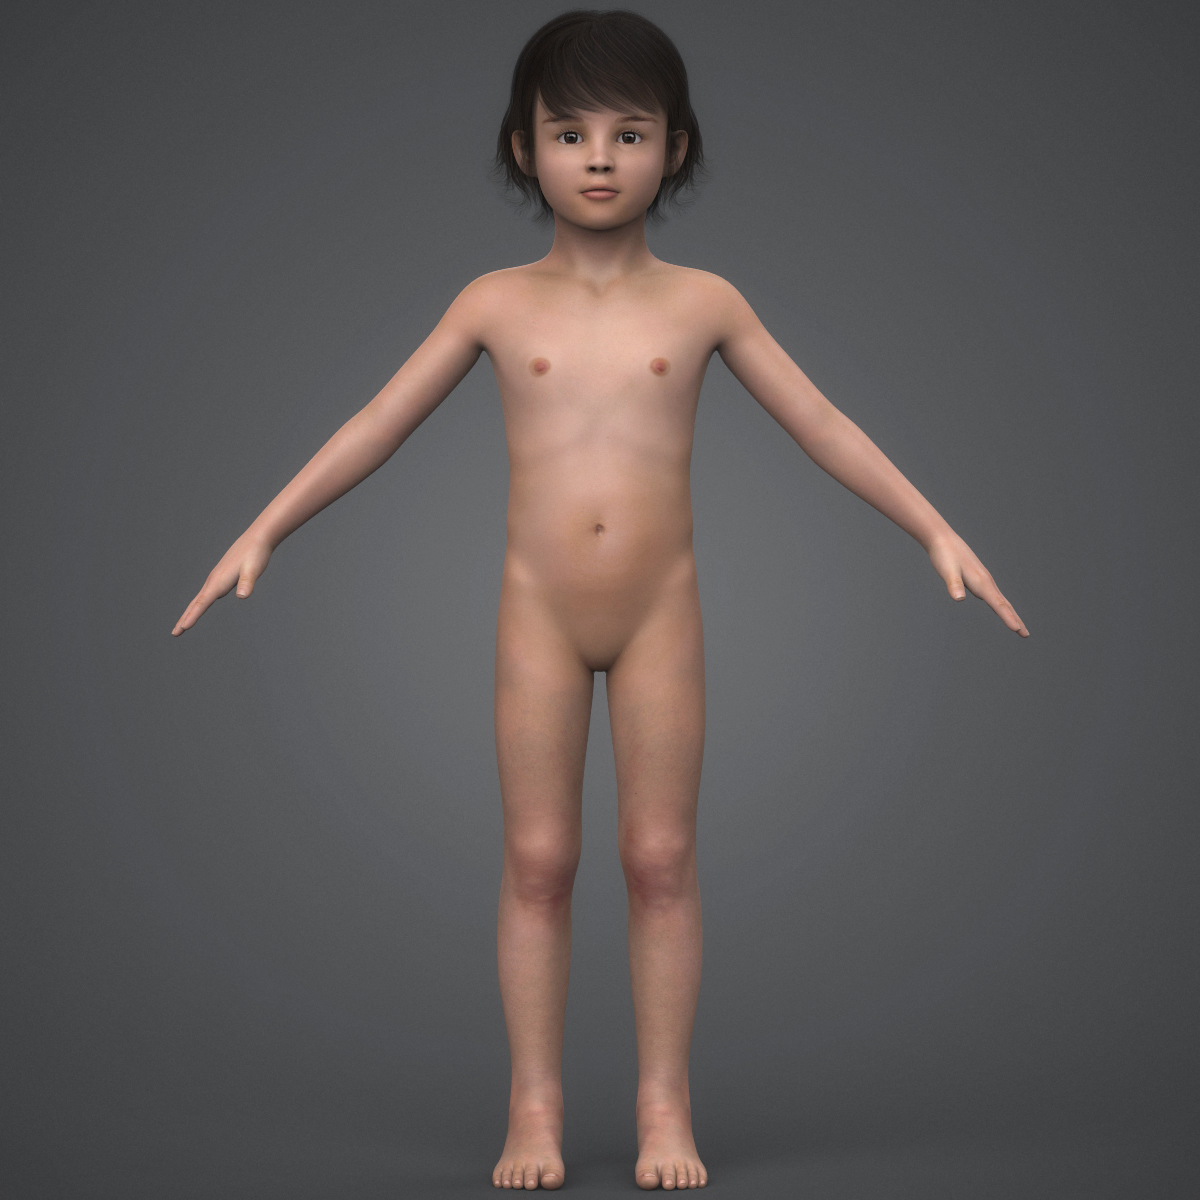 beautiful child girl 3d model max fbx c4d ma mb texture obj 252402